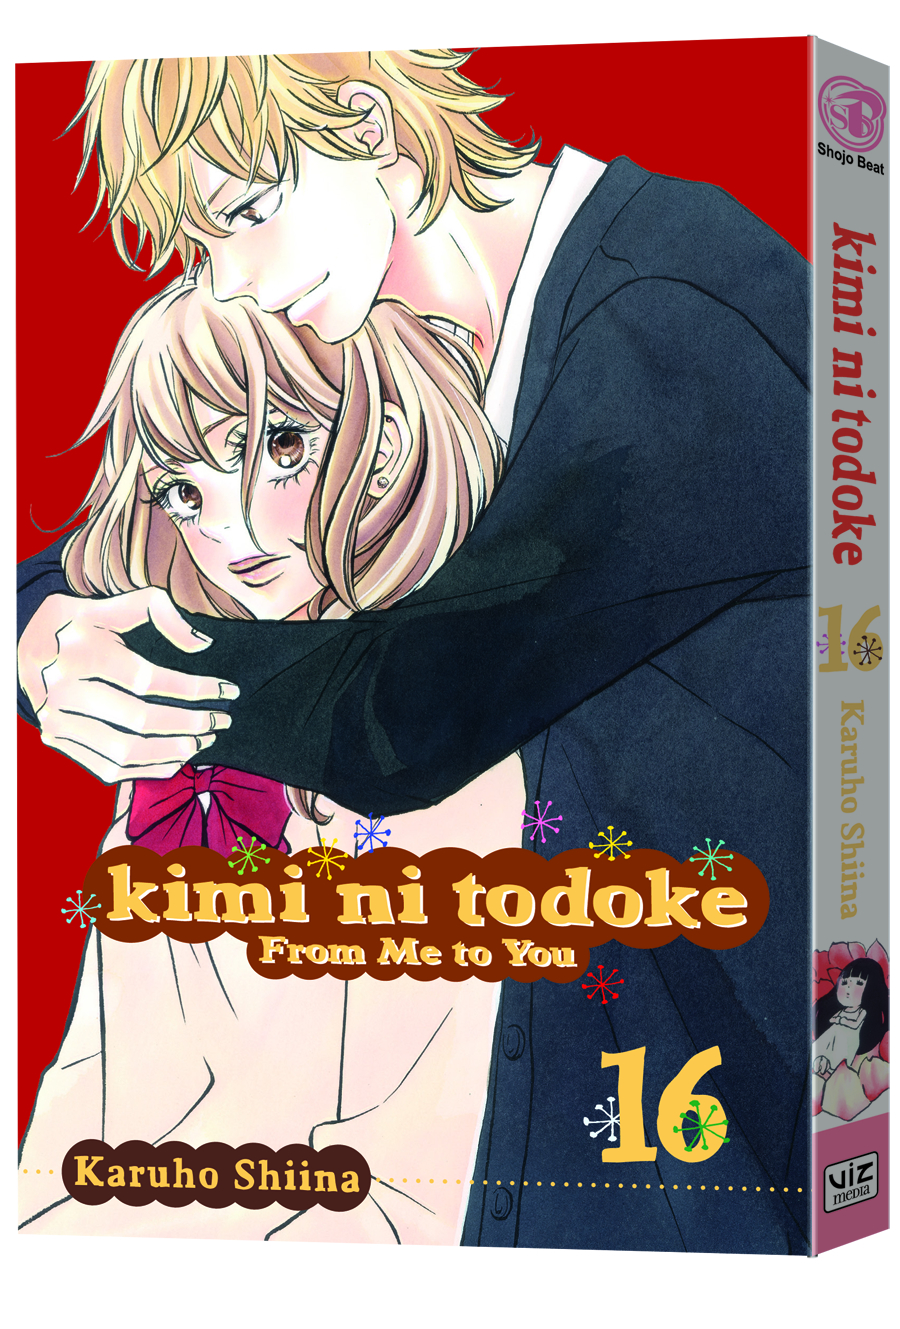 KIMI NI TODOKE GN VOL 16 FROM ME TO YOU